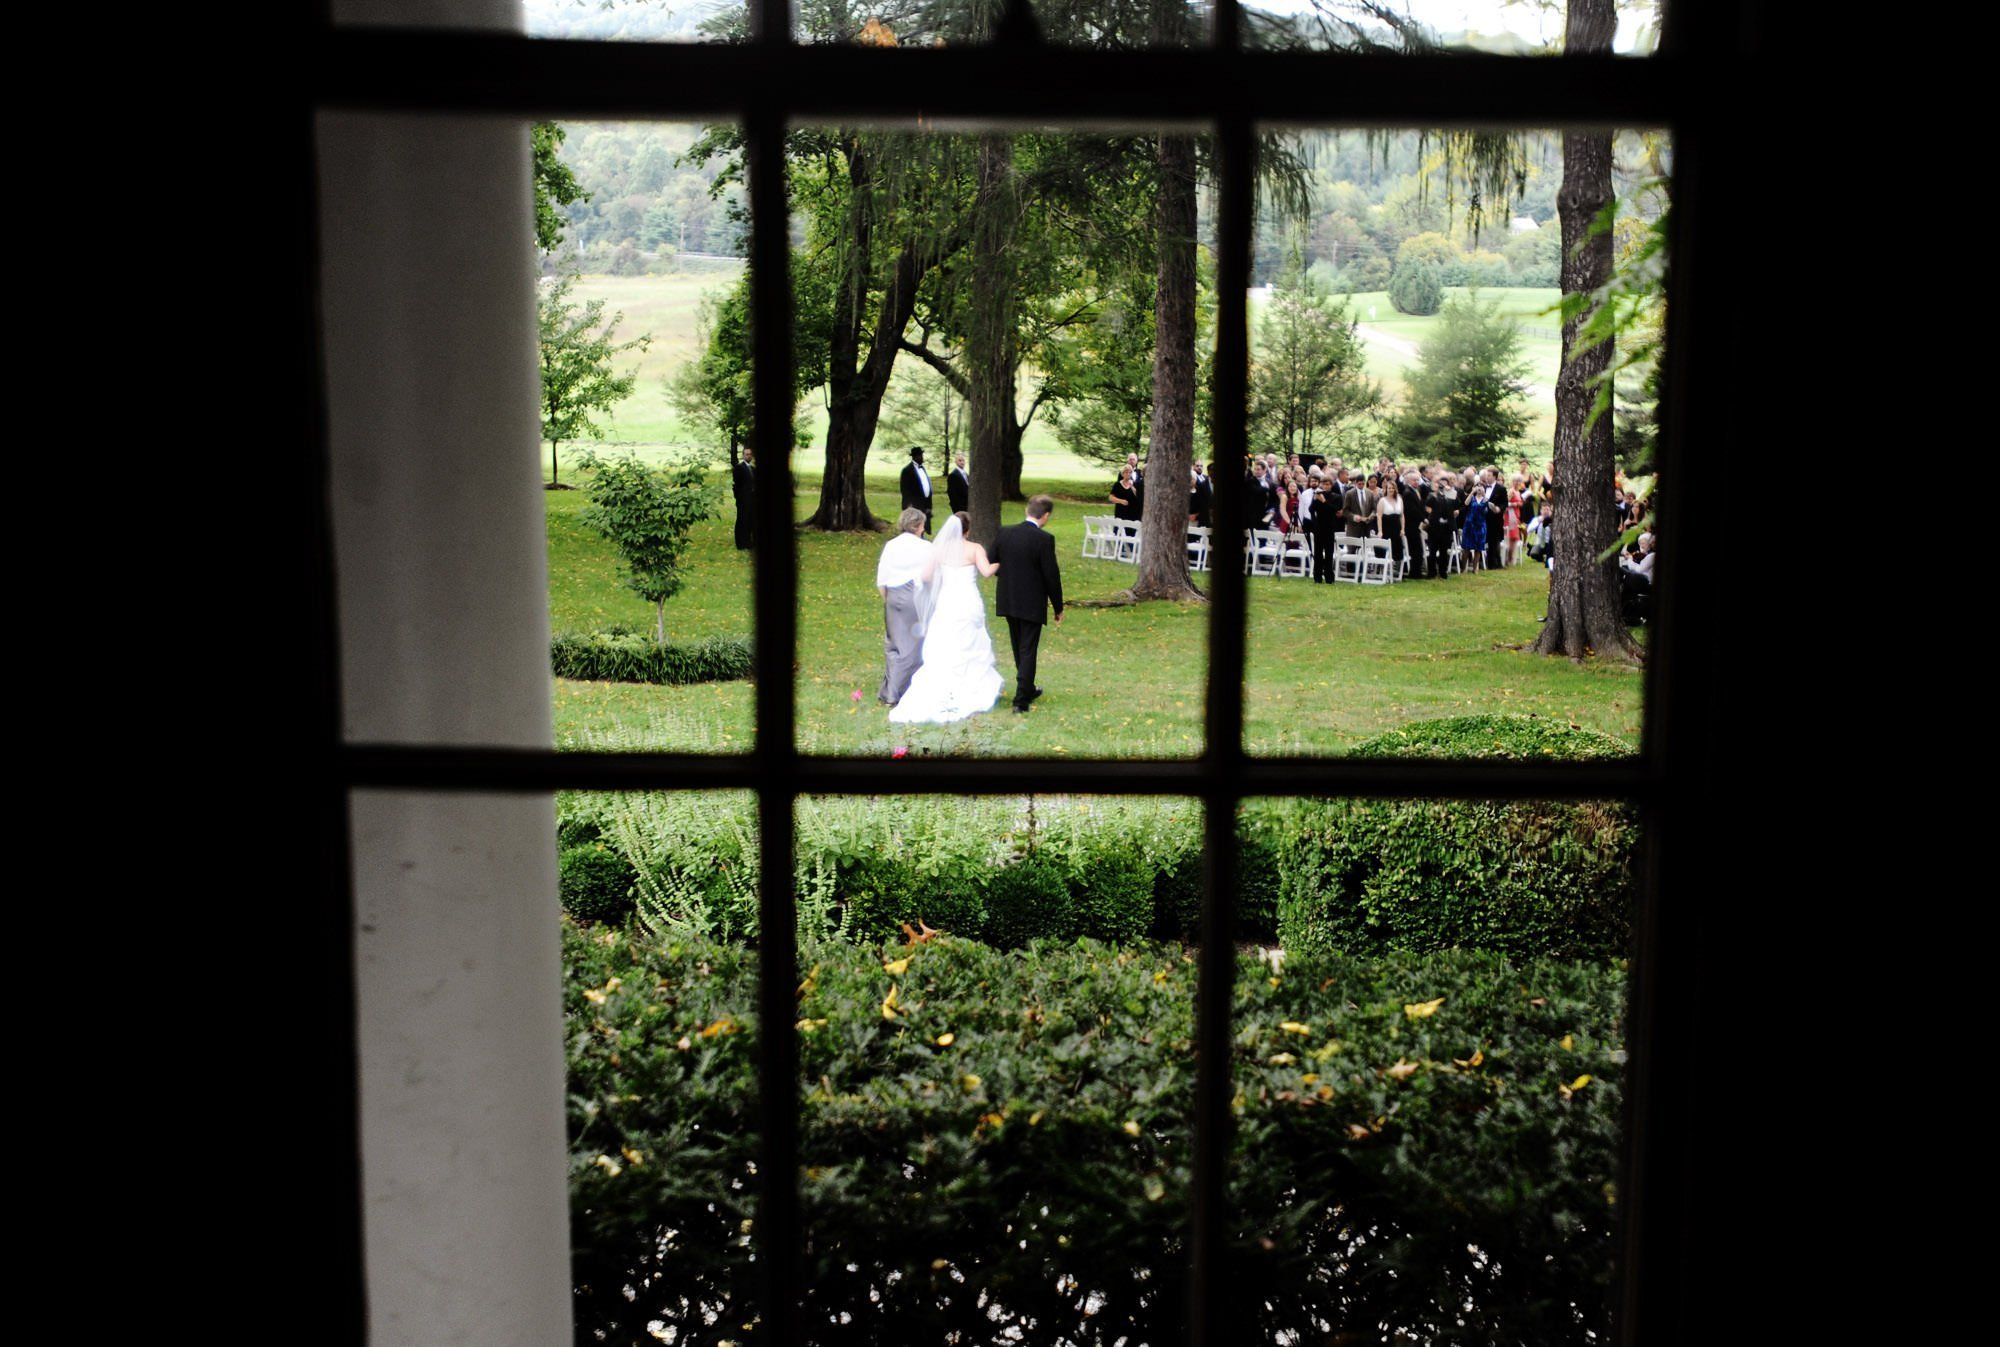 The bride is escorted by her parents to the ceremony space during her Whitehall Estate wedding.